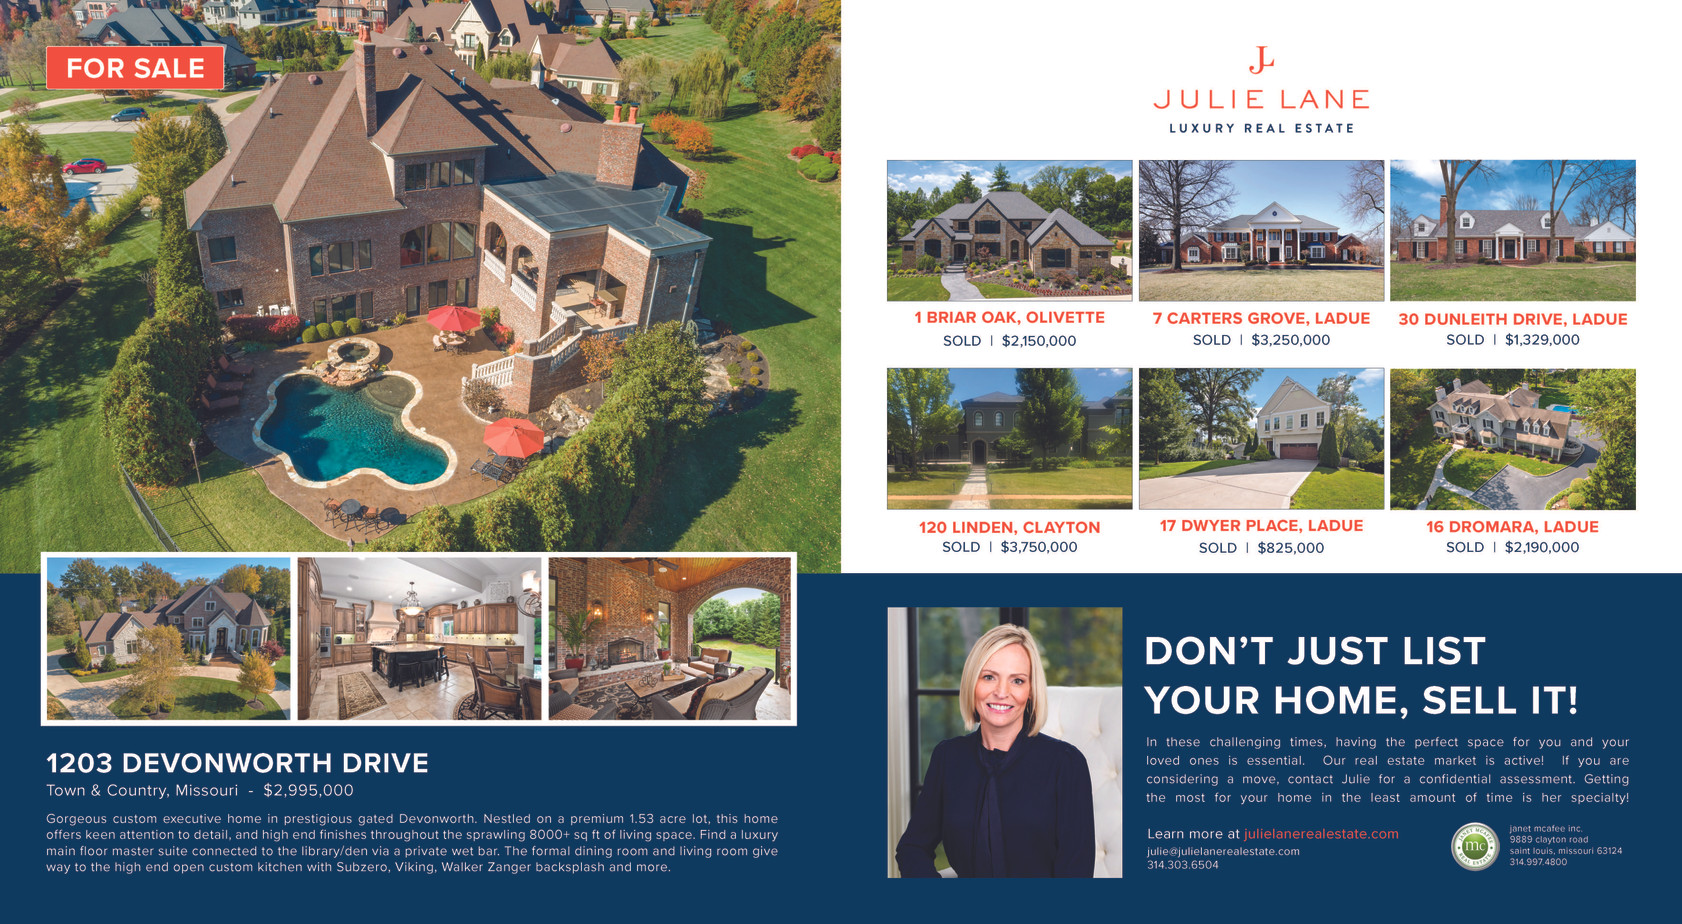 Julie Lane Real Estate in Ladue News